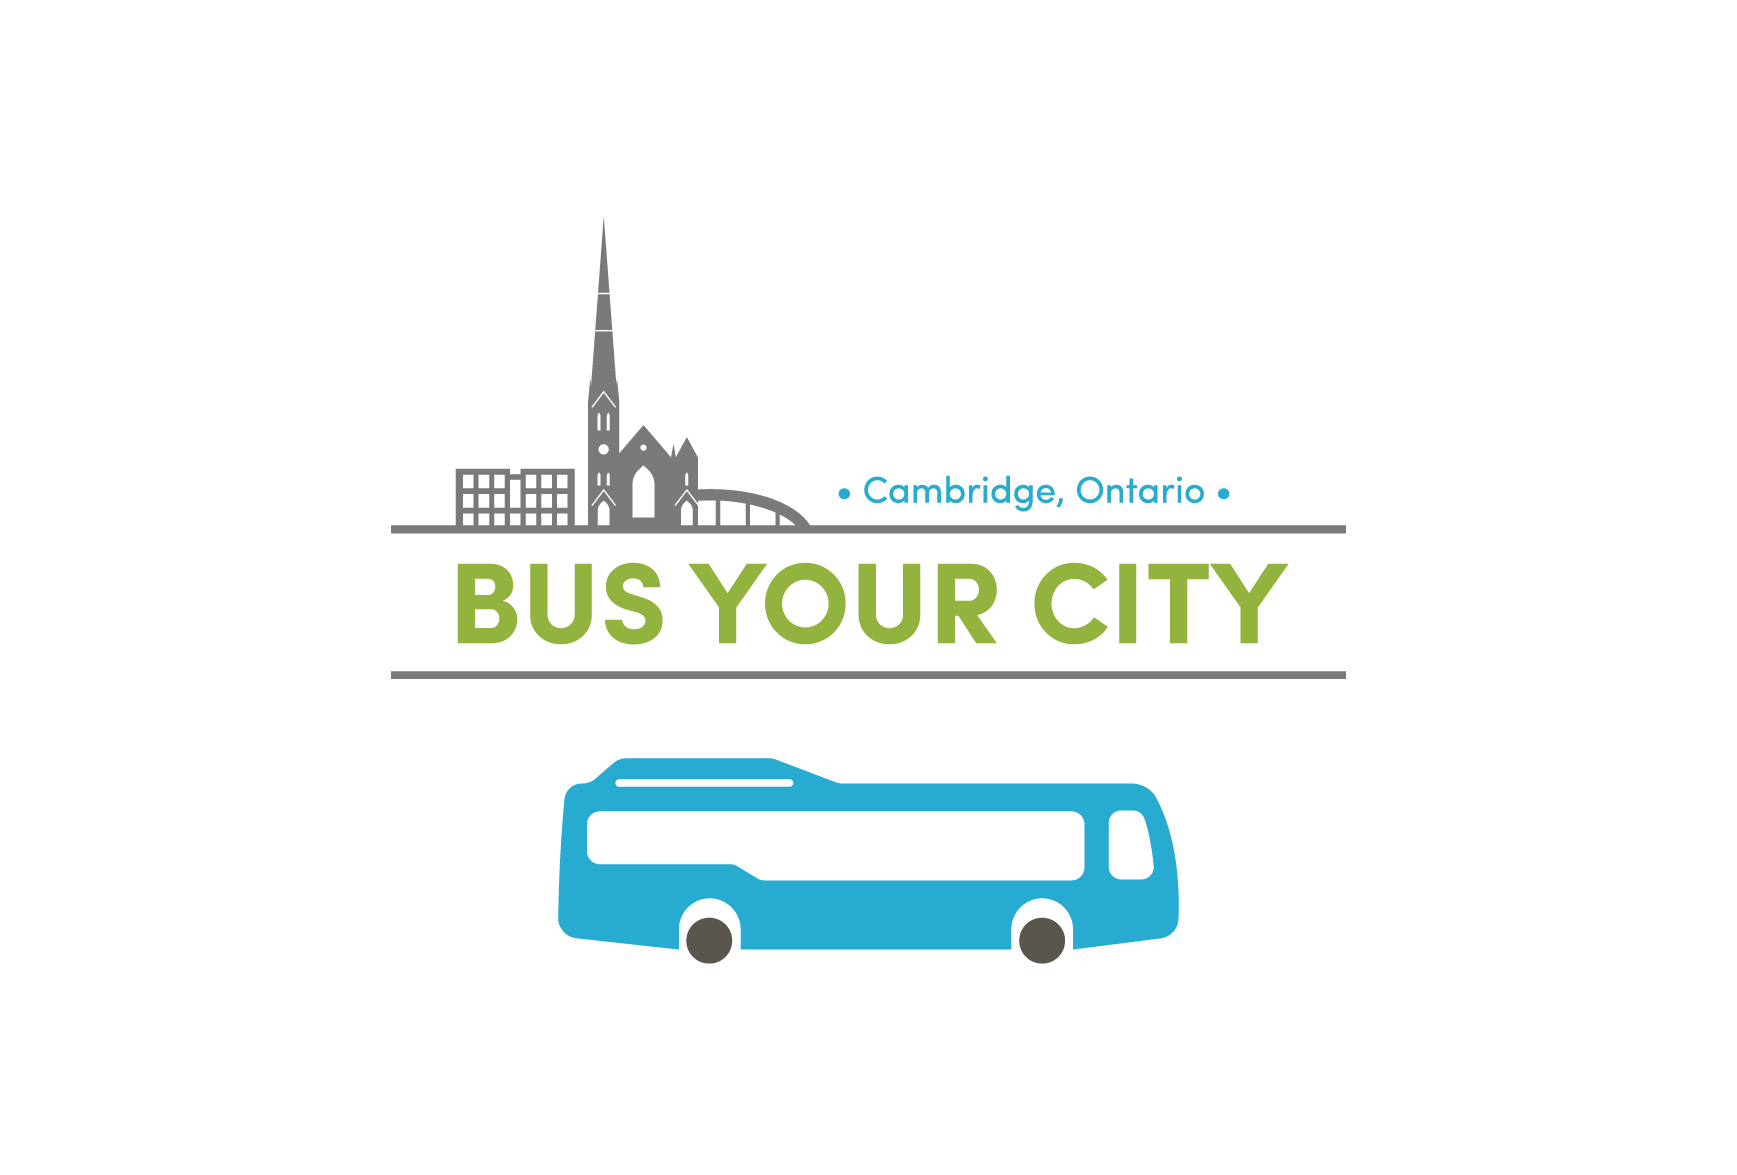 bus your city